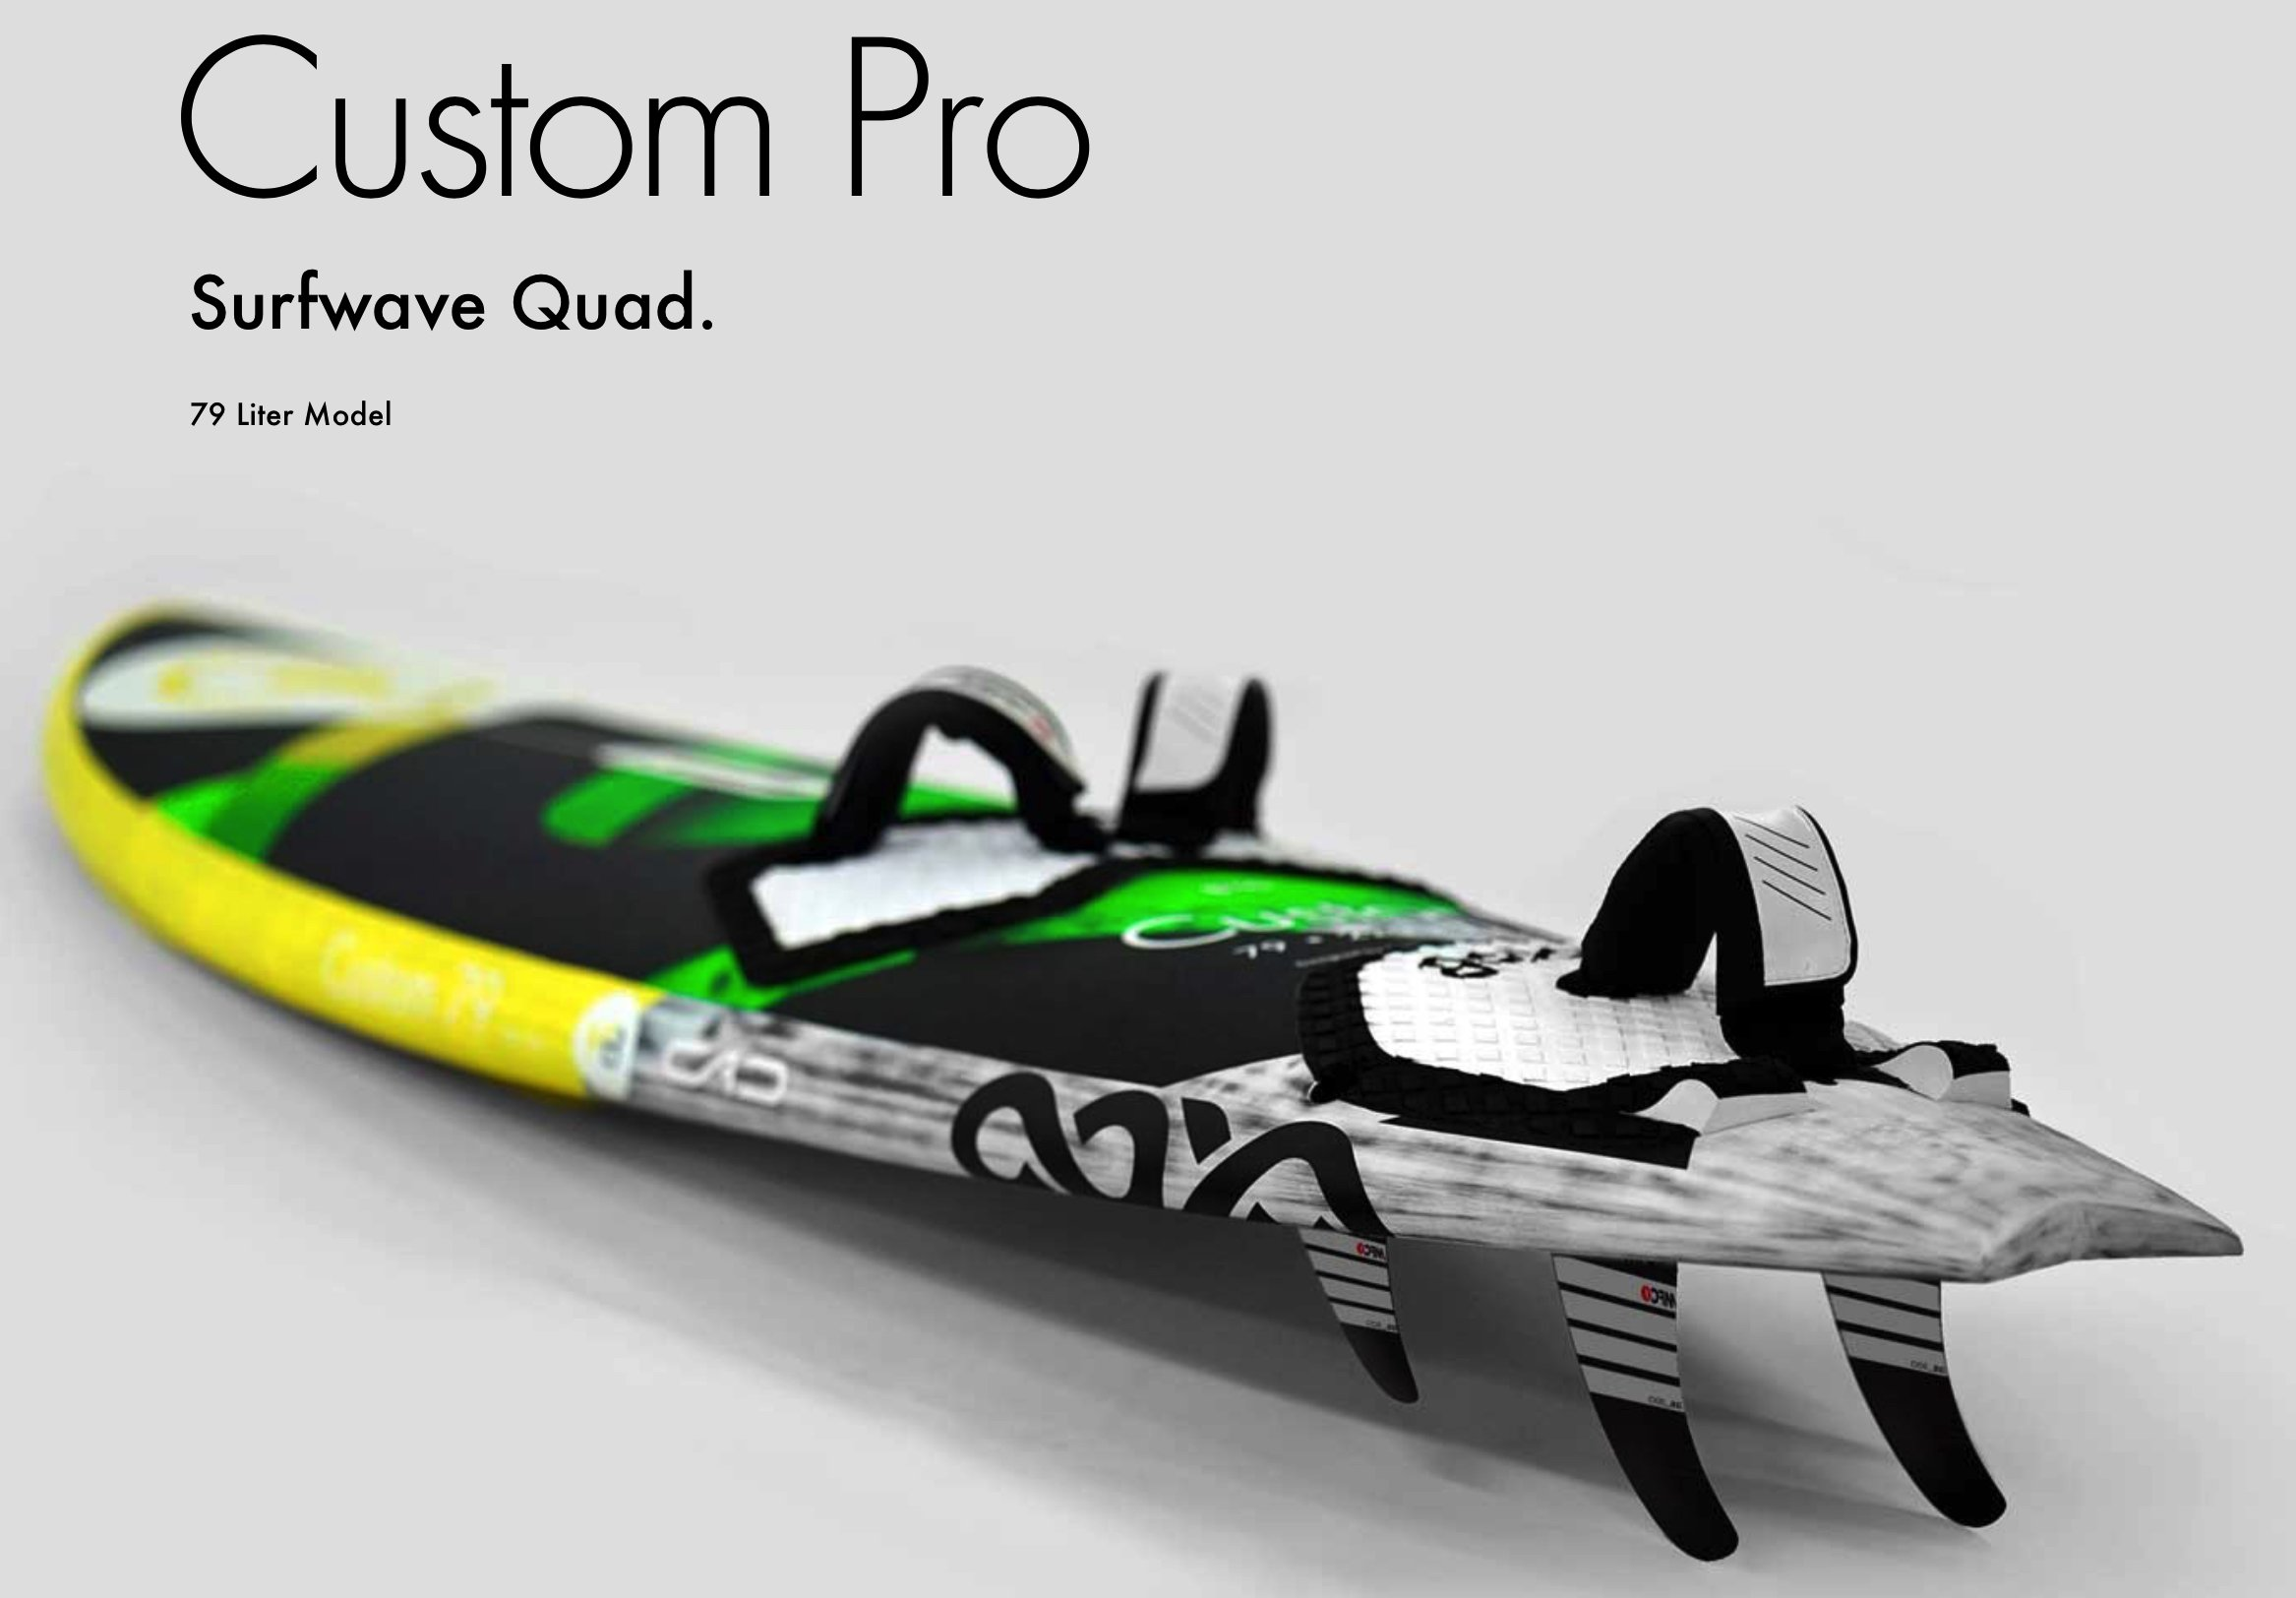 Goya Custom Quad Pro Wave Windsurf Board 2019